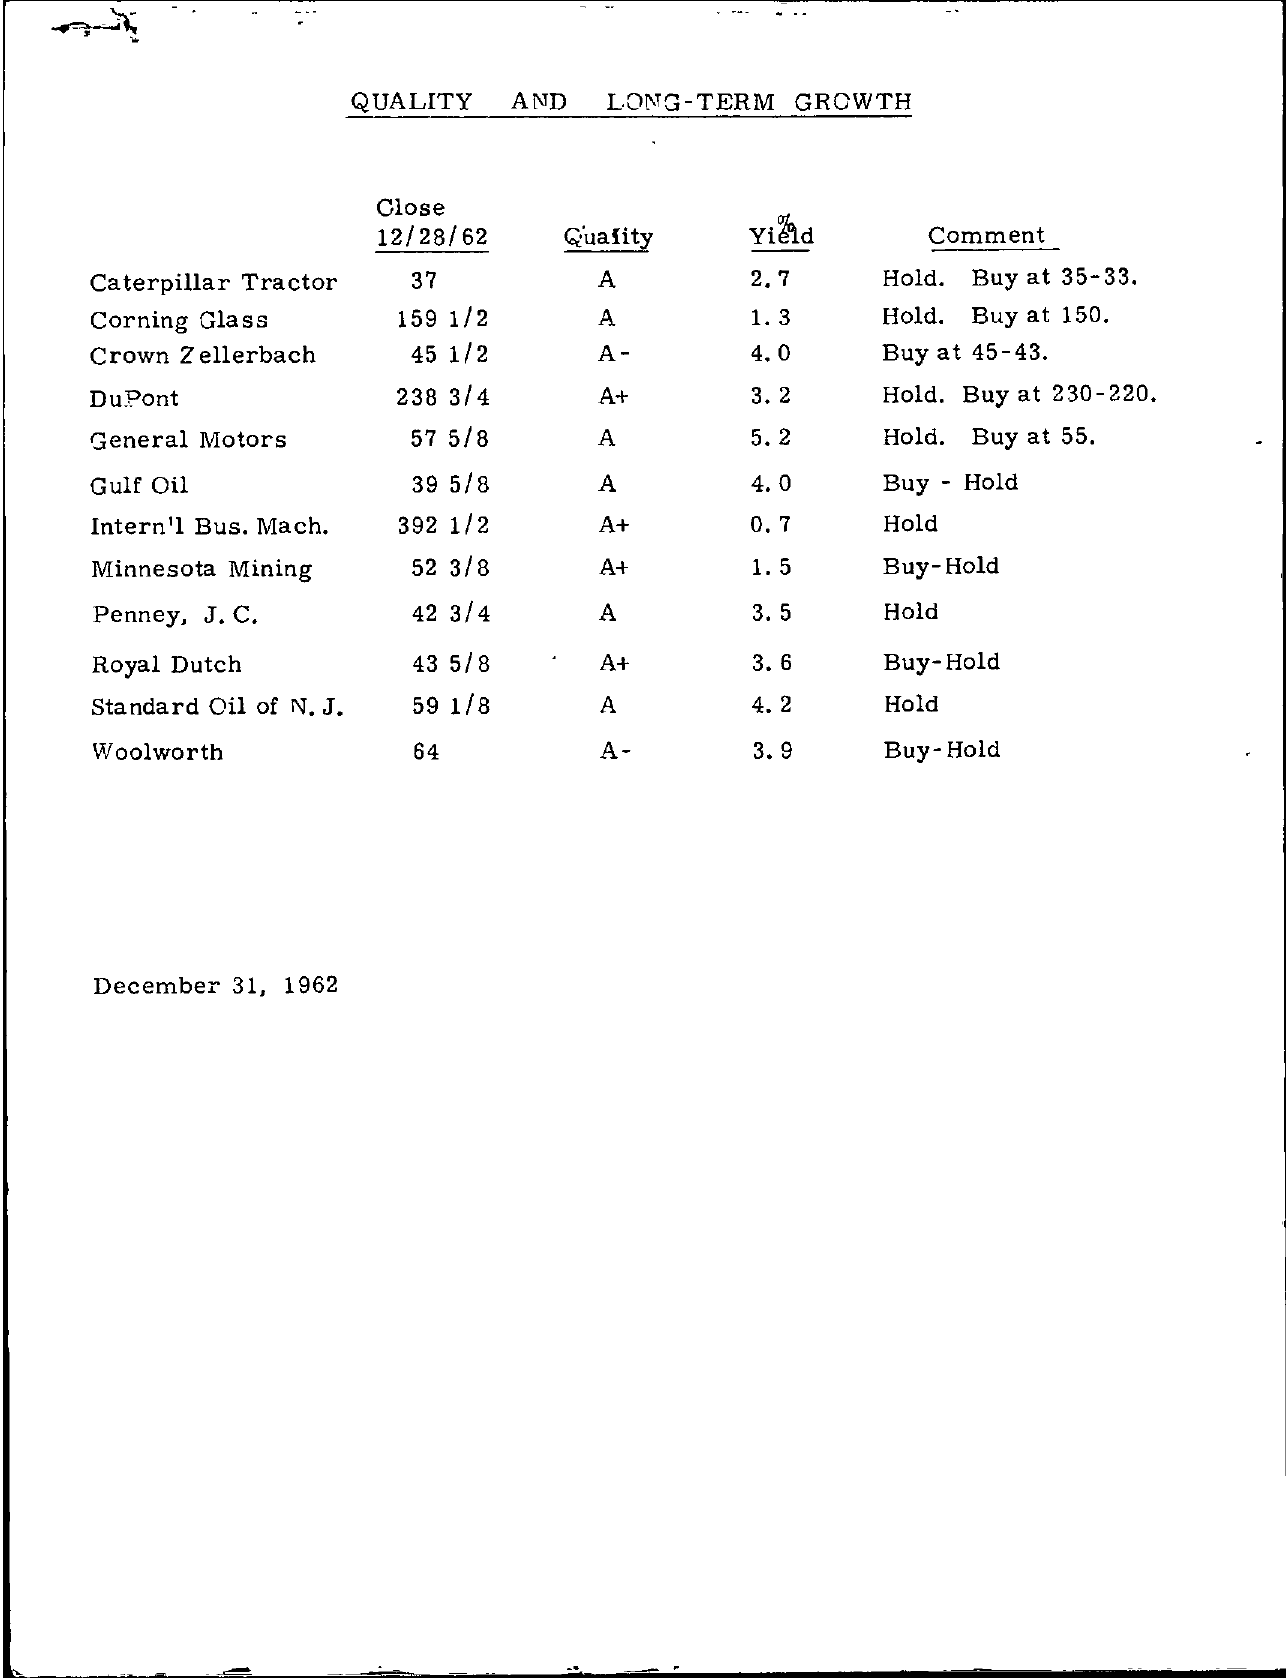 Tabell's Market Letter - December 31, 1962 page 2